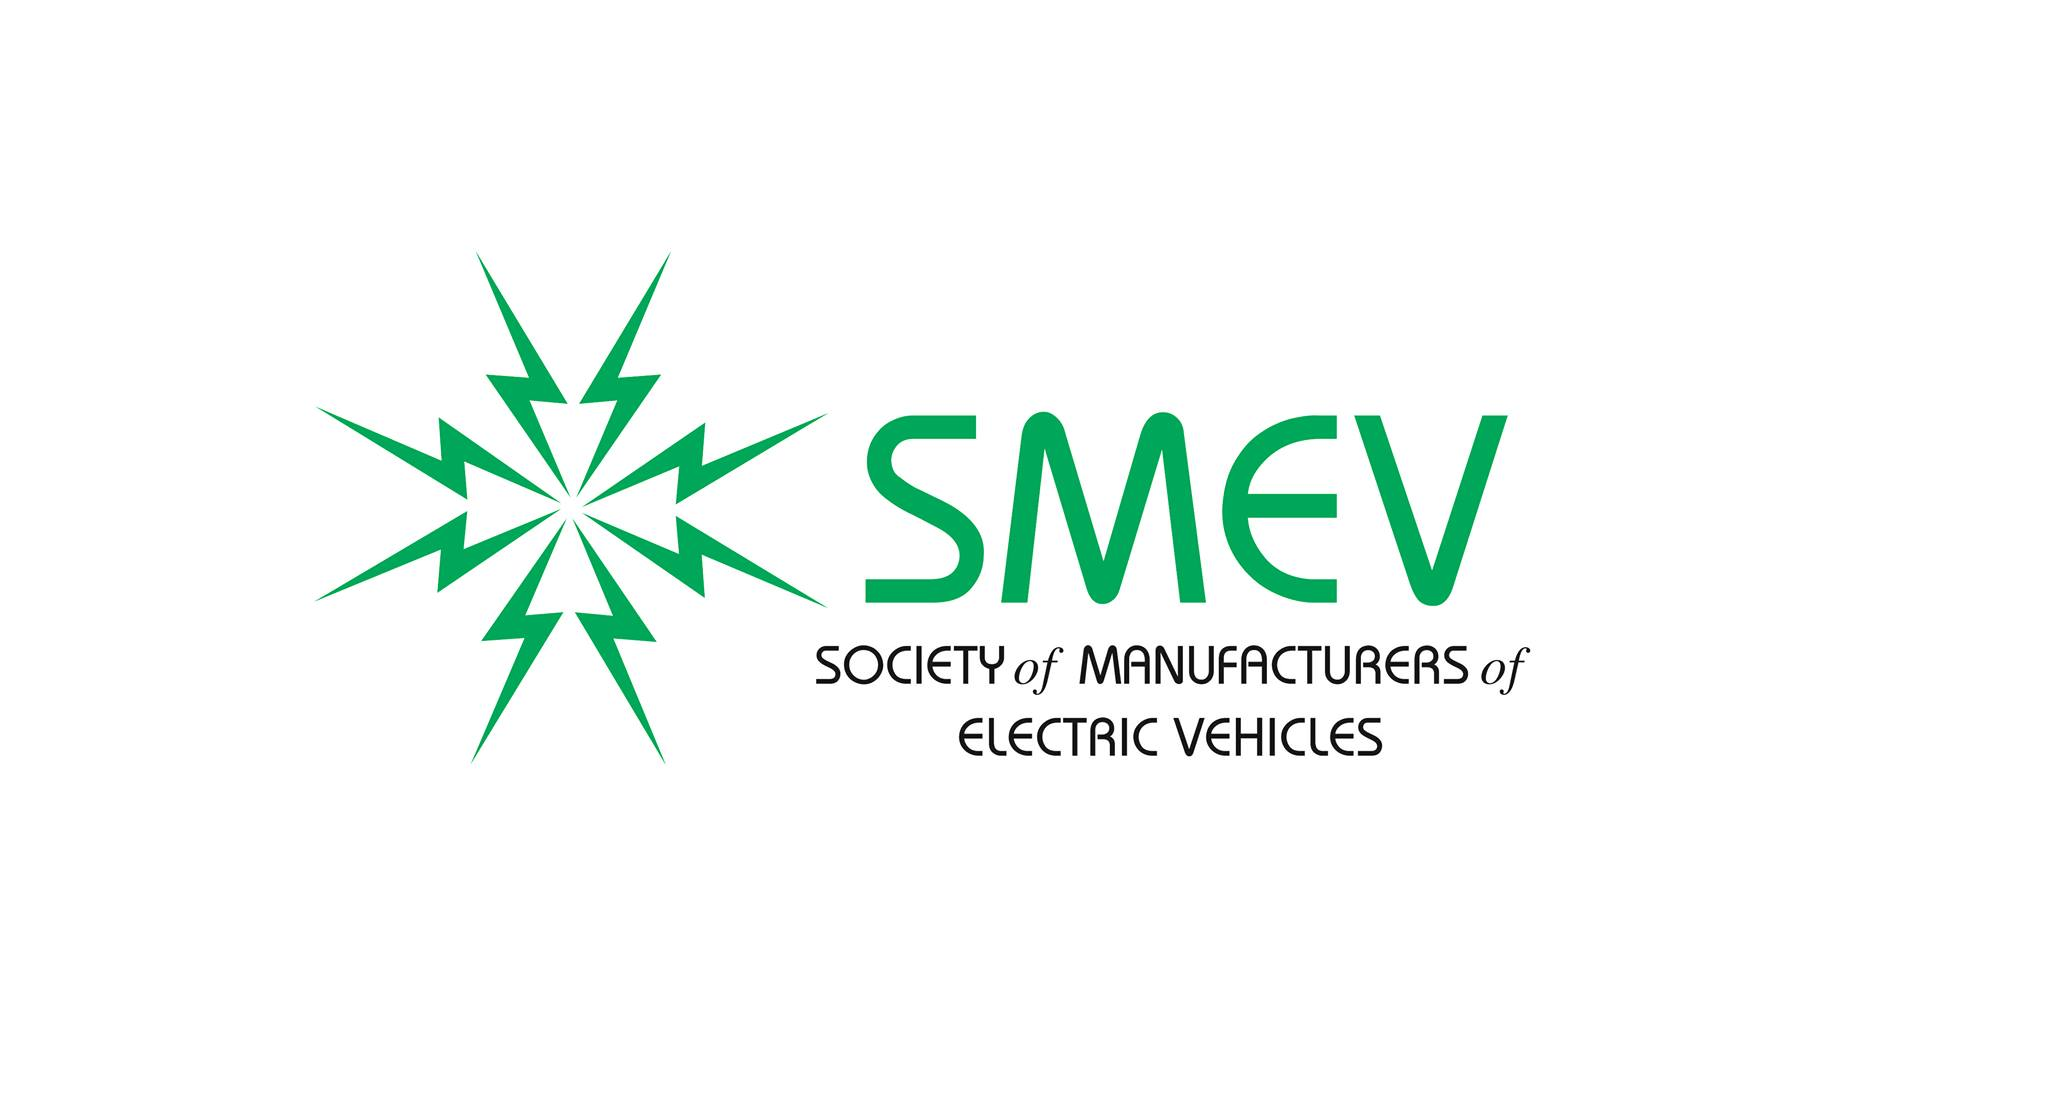 Society of Manufacturers of Electric Vehilces